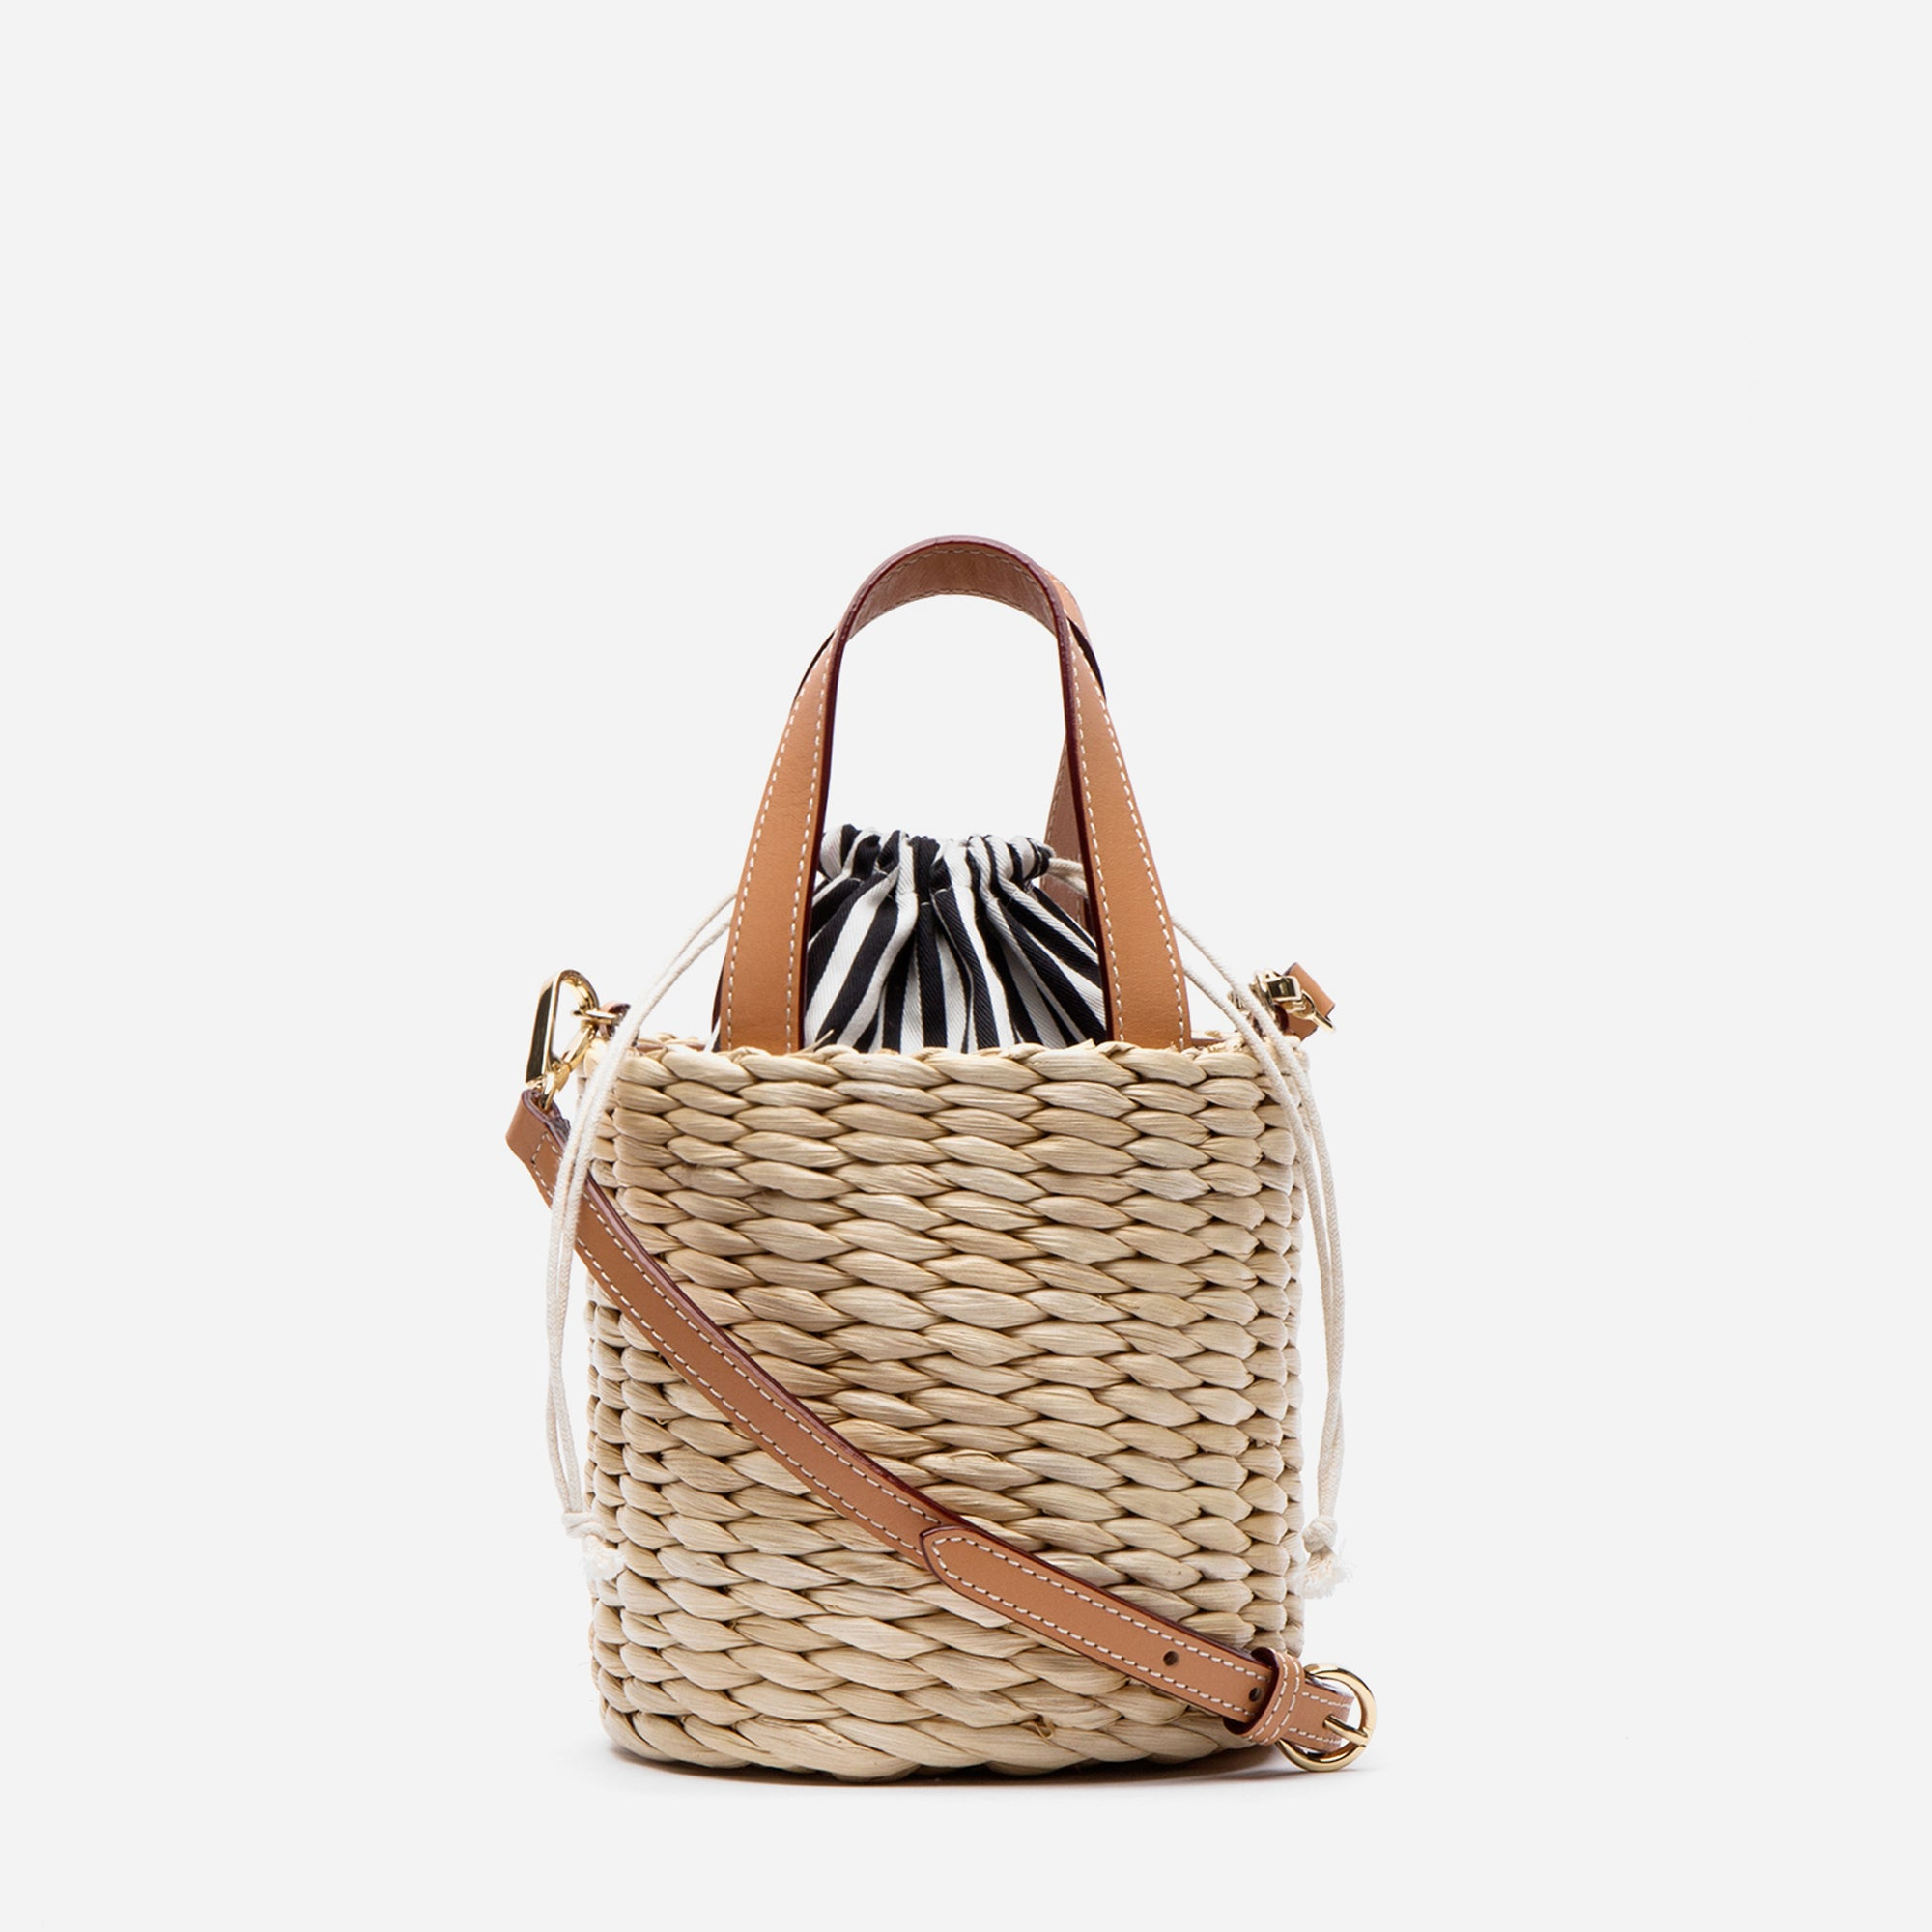 Small handwoven cornhusk bucket bag with striped interior. Shop Frances Valentine.